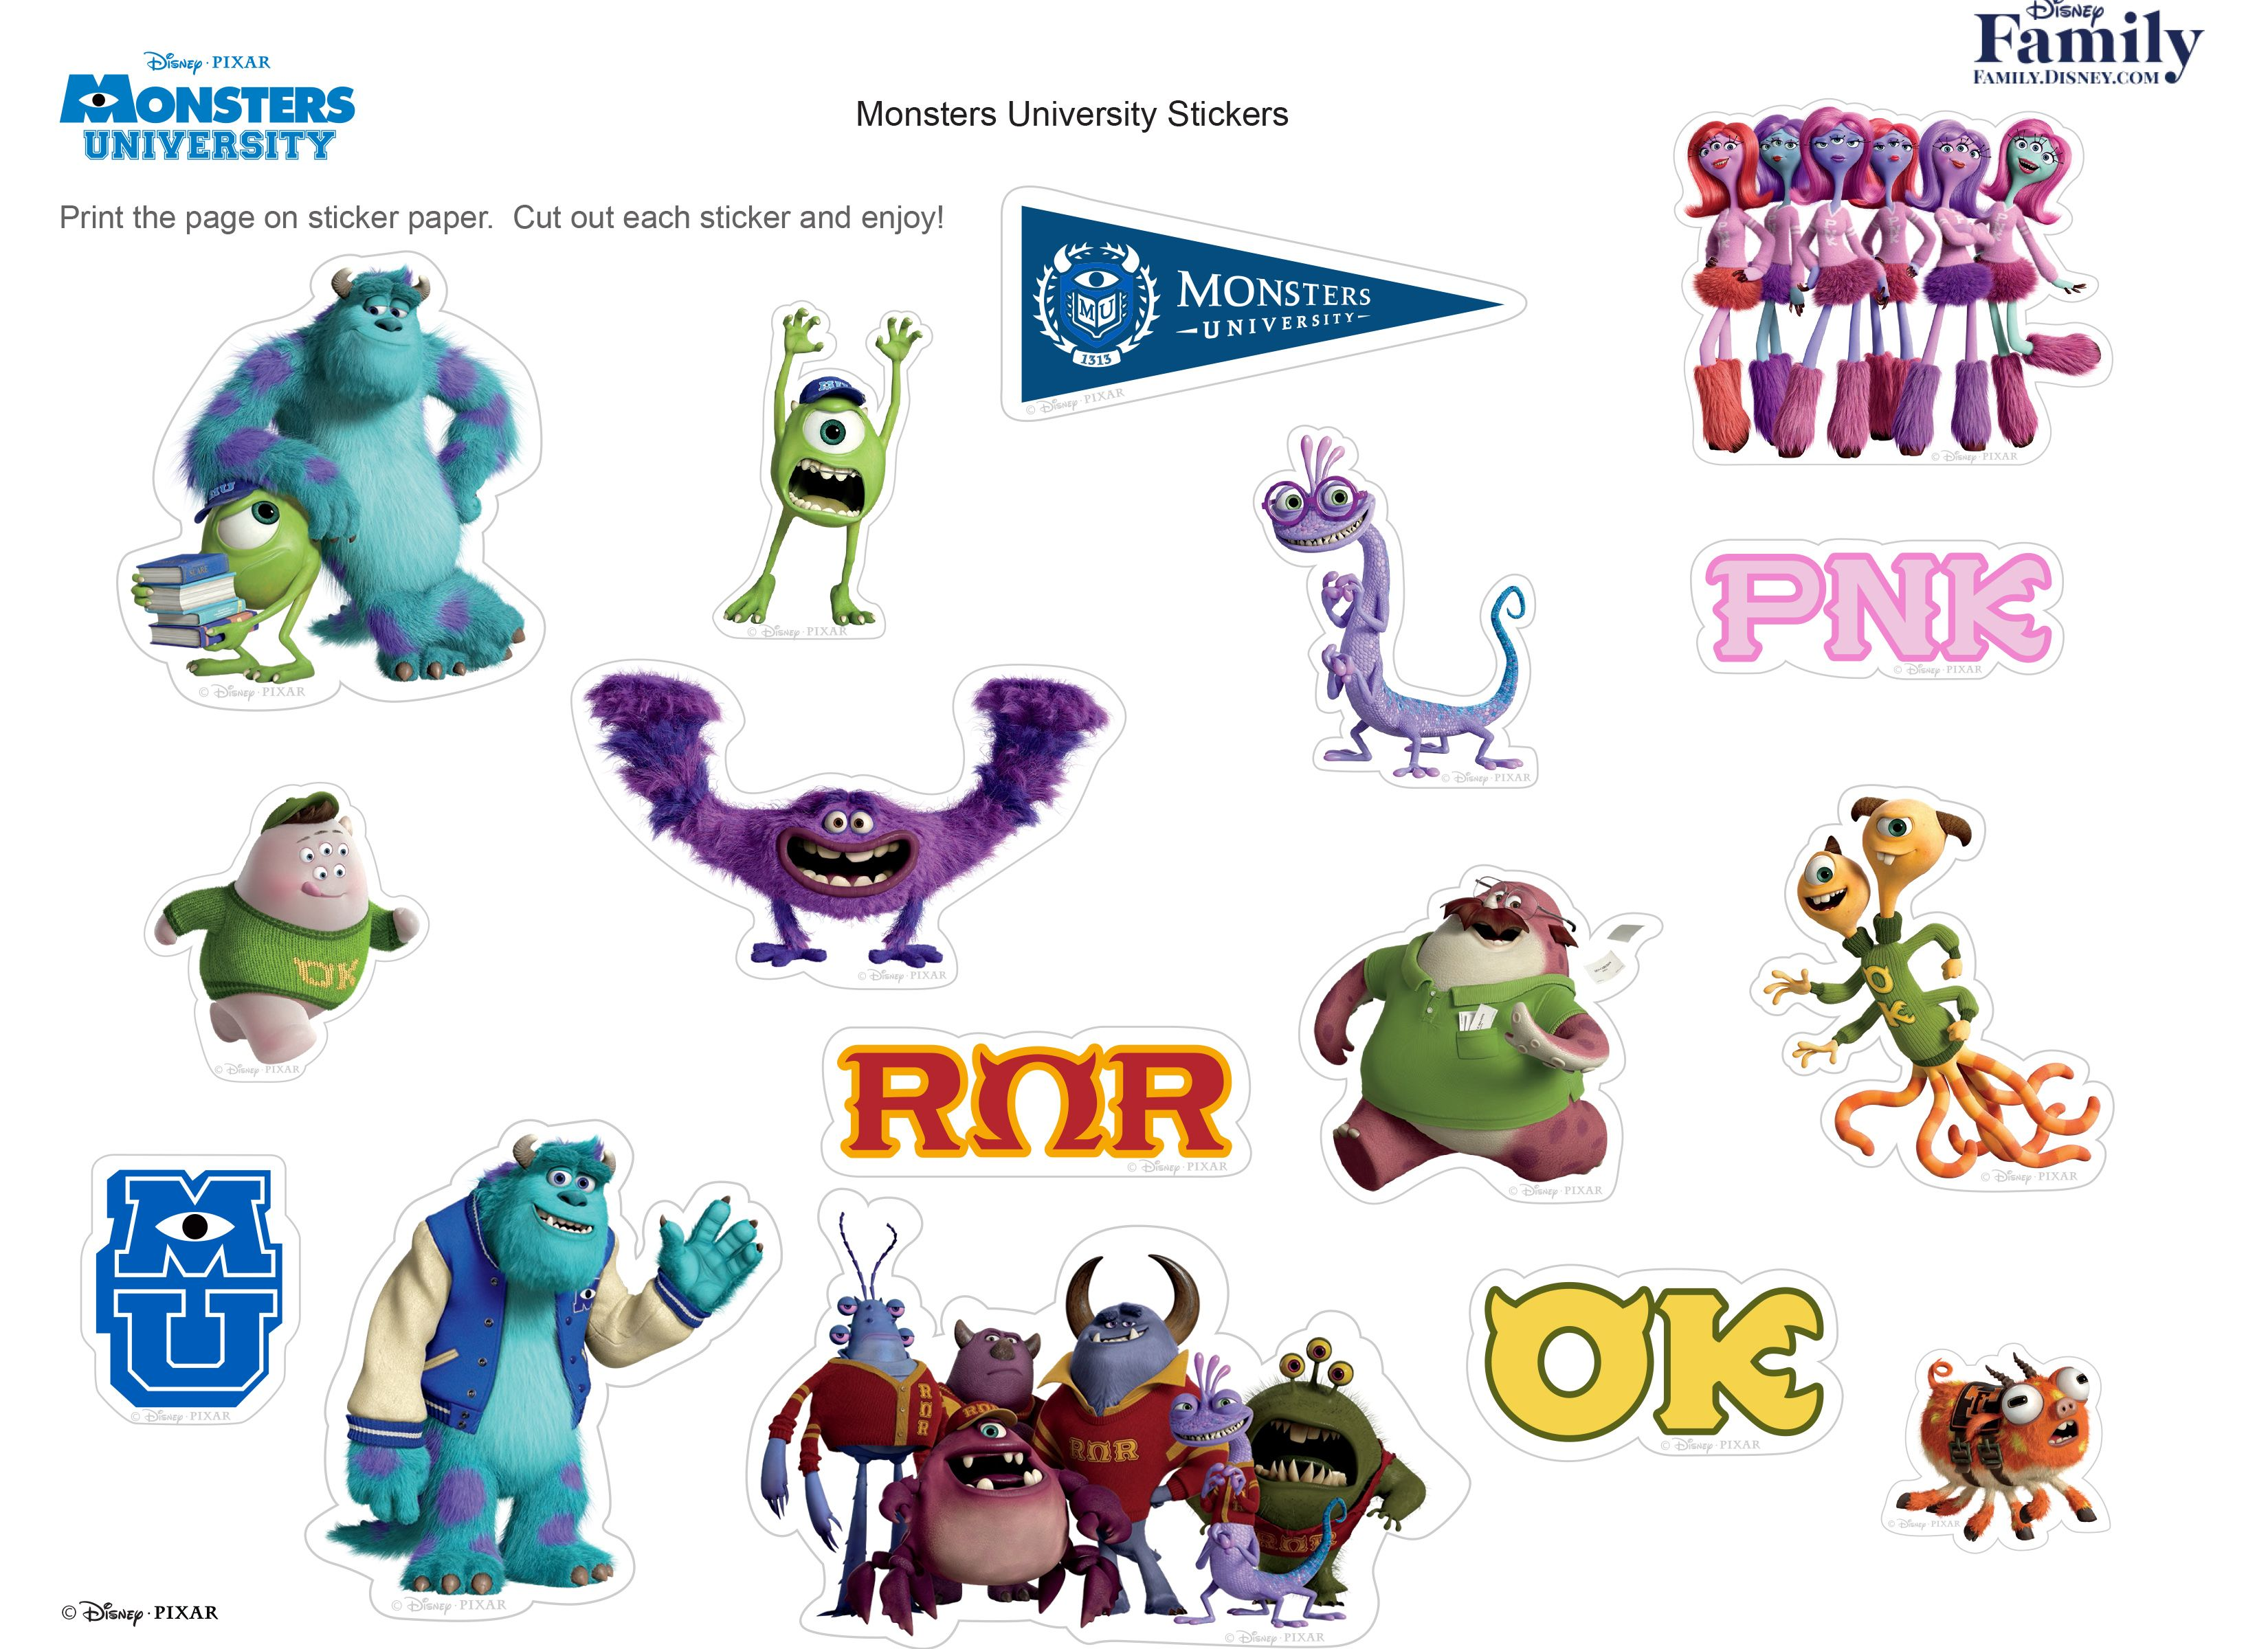 Monsters University Stickers Monsters